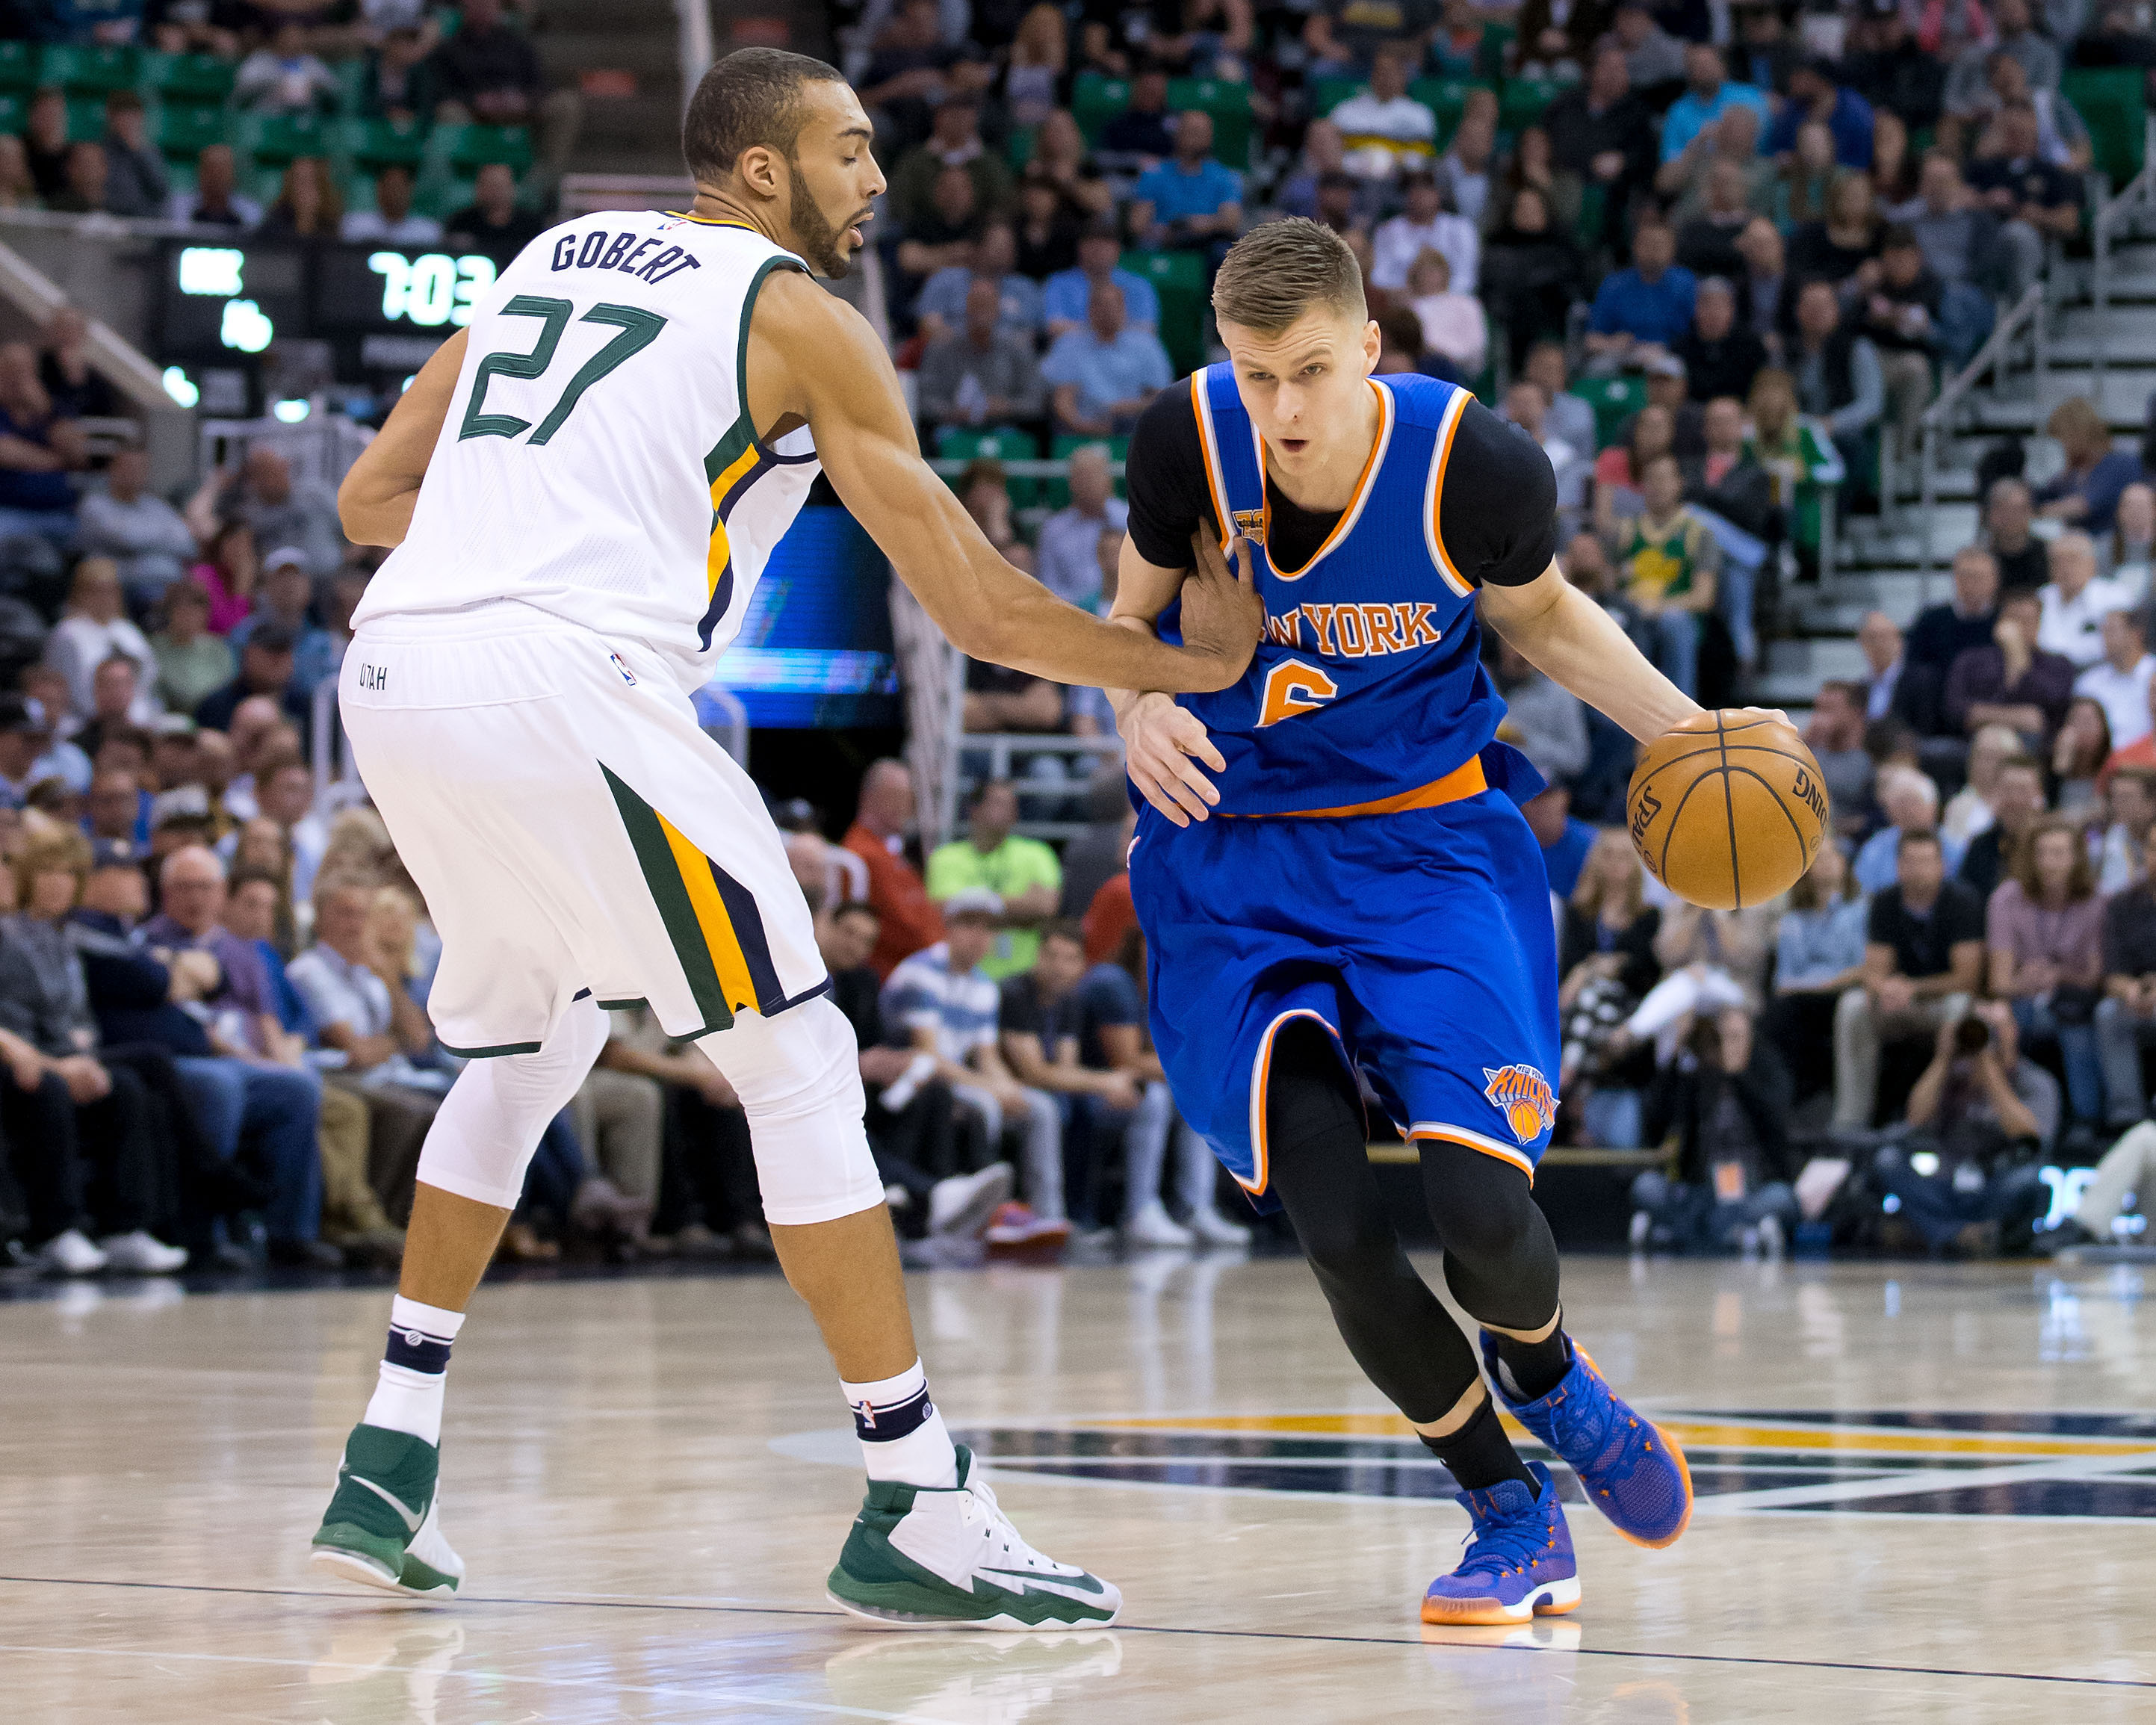 9965408-nba-new-york-knicks-at-utah-jazz